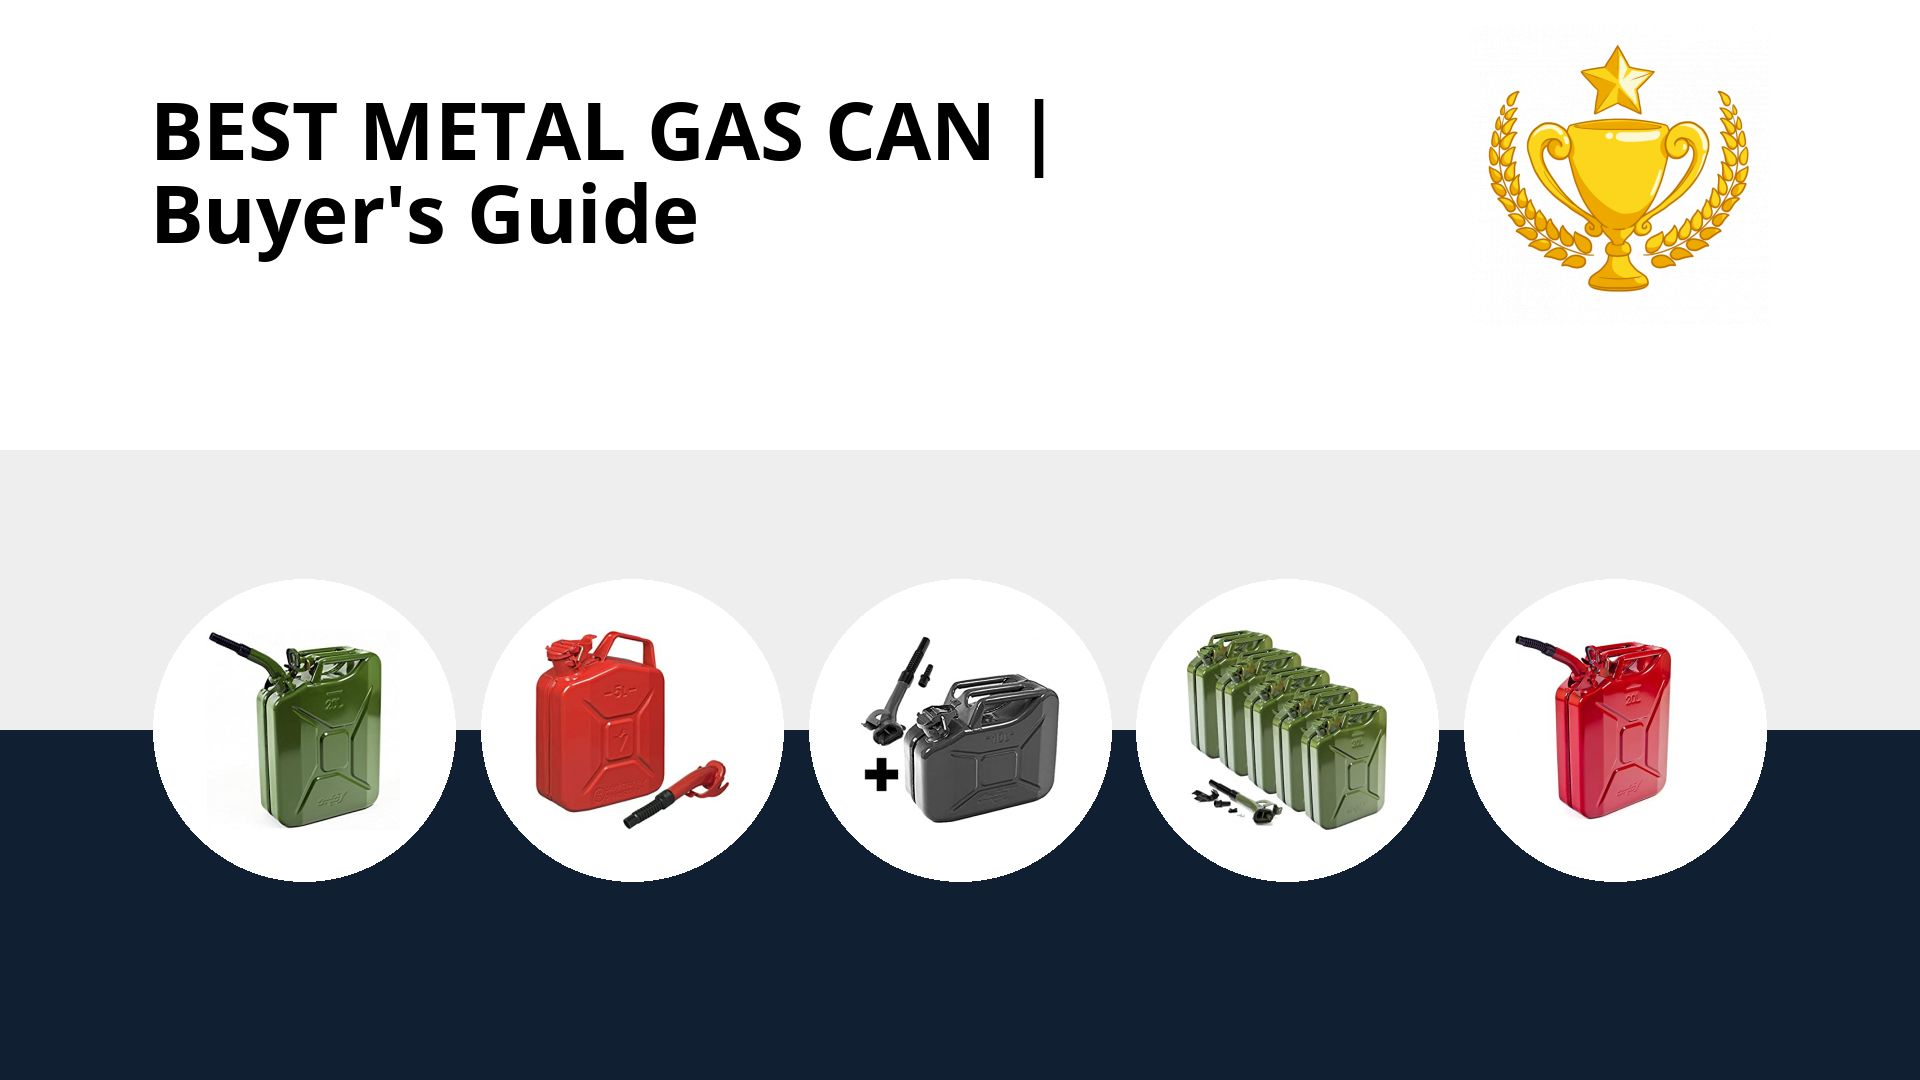 Best Metal Gas Can: image